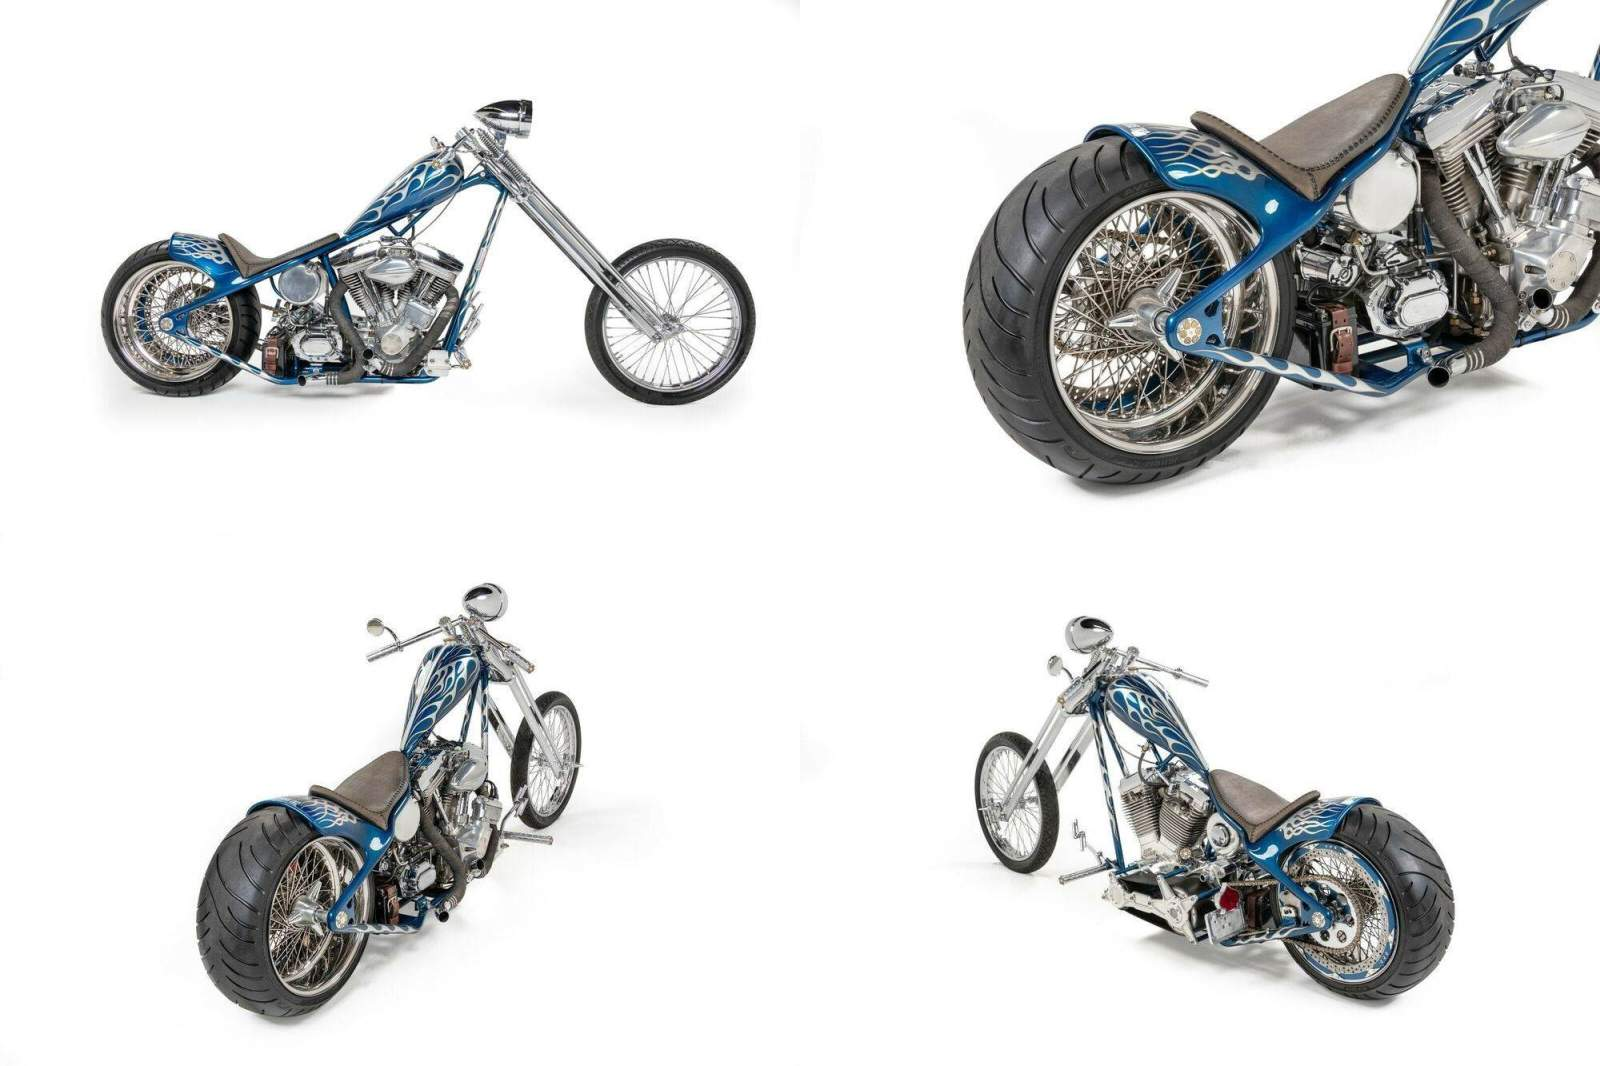 2002 Custom Built Motorcycles Chopper  used for sale